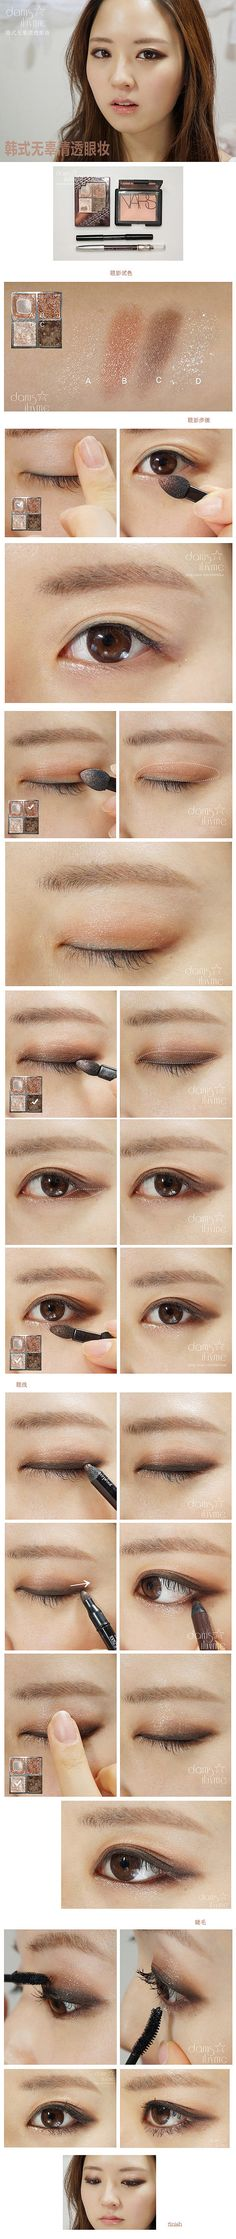 A suitable US replacement for the Visee palette used is probably the Copper Chic Maybelline Studio Plush Eyeshadow quad. They have a super similar formulation and even sponge included to Japanese drugstore palettes that I own.